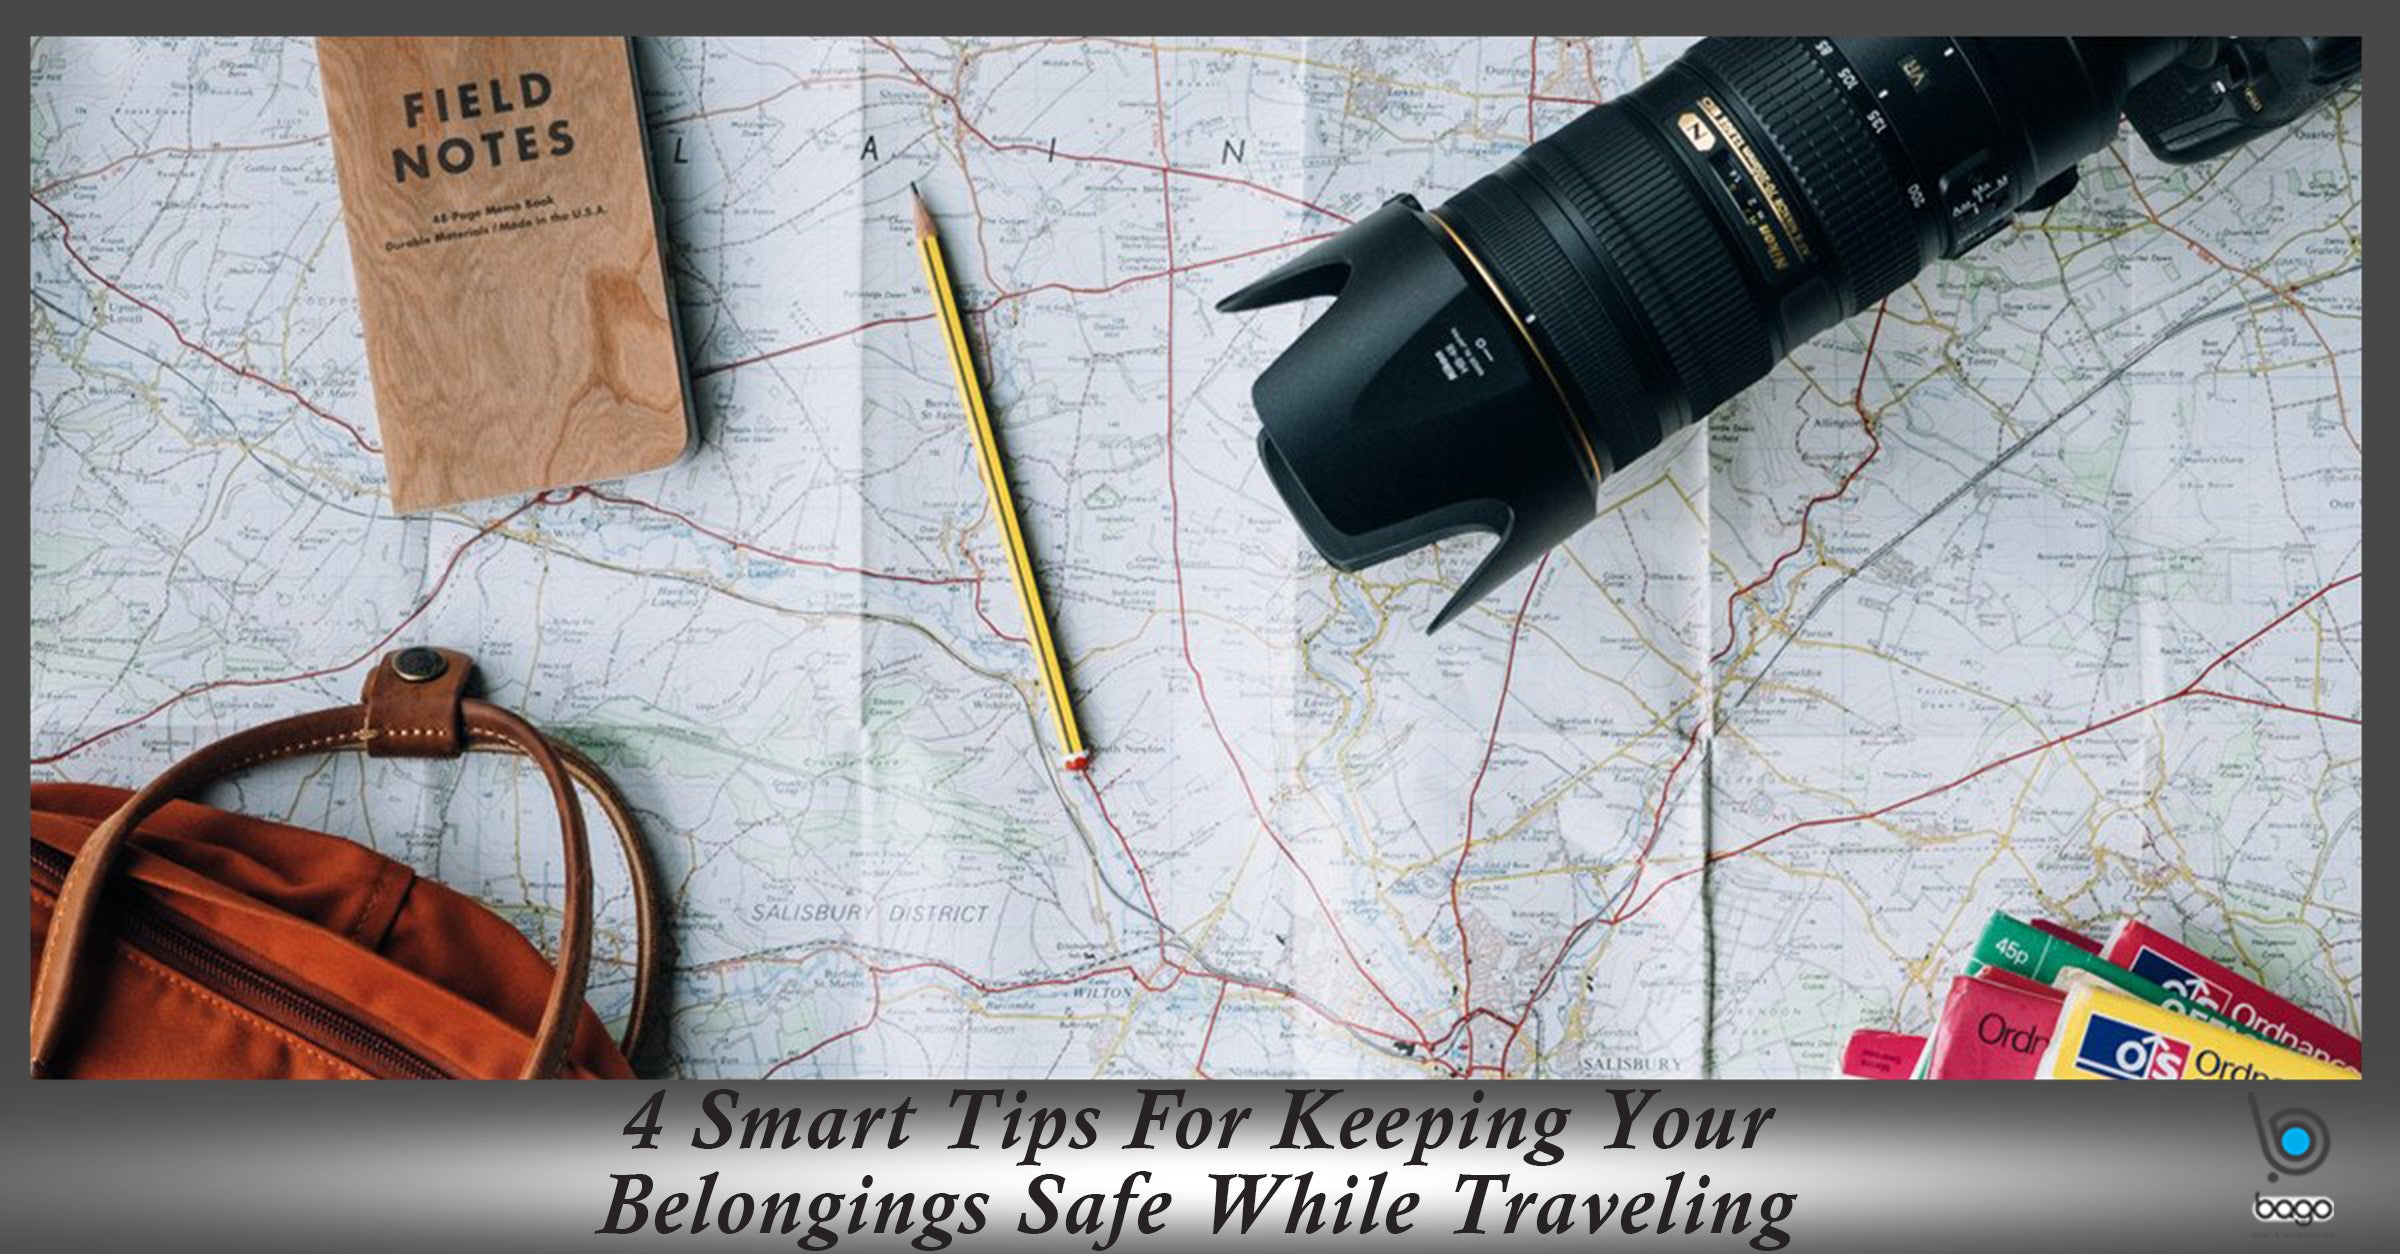 4 Smart Tips For Keeping Your Belongings Safe While Traveling